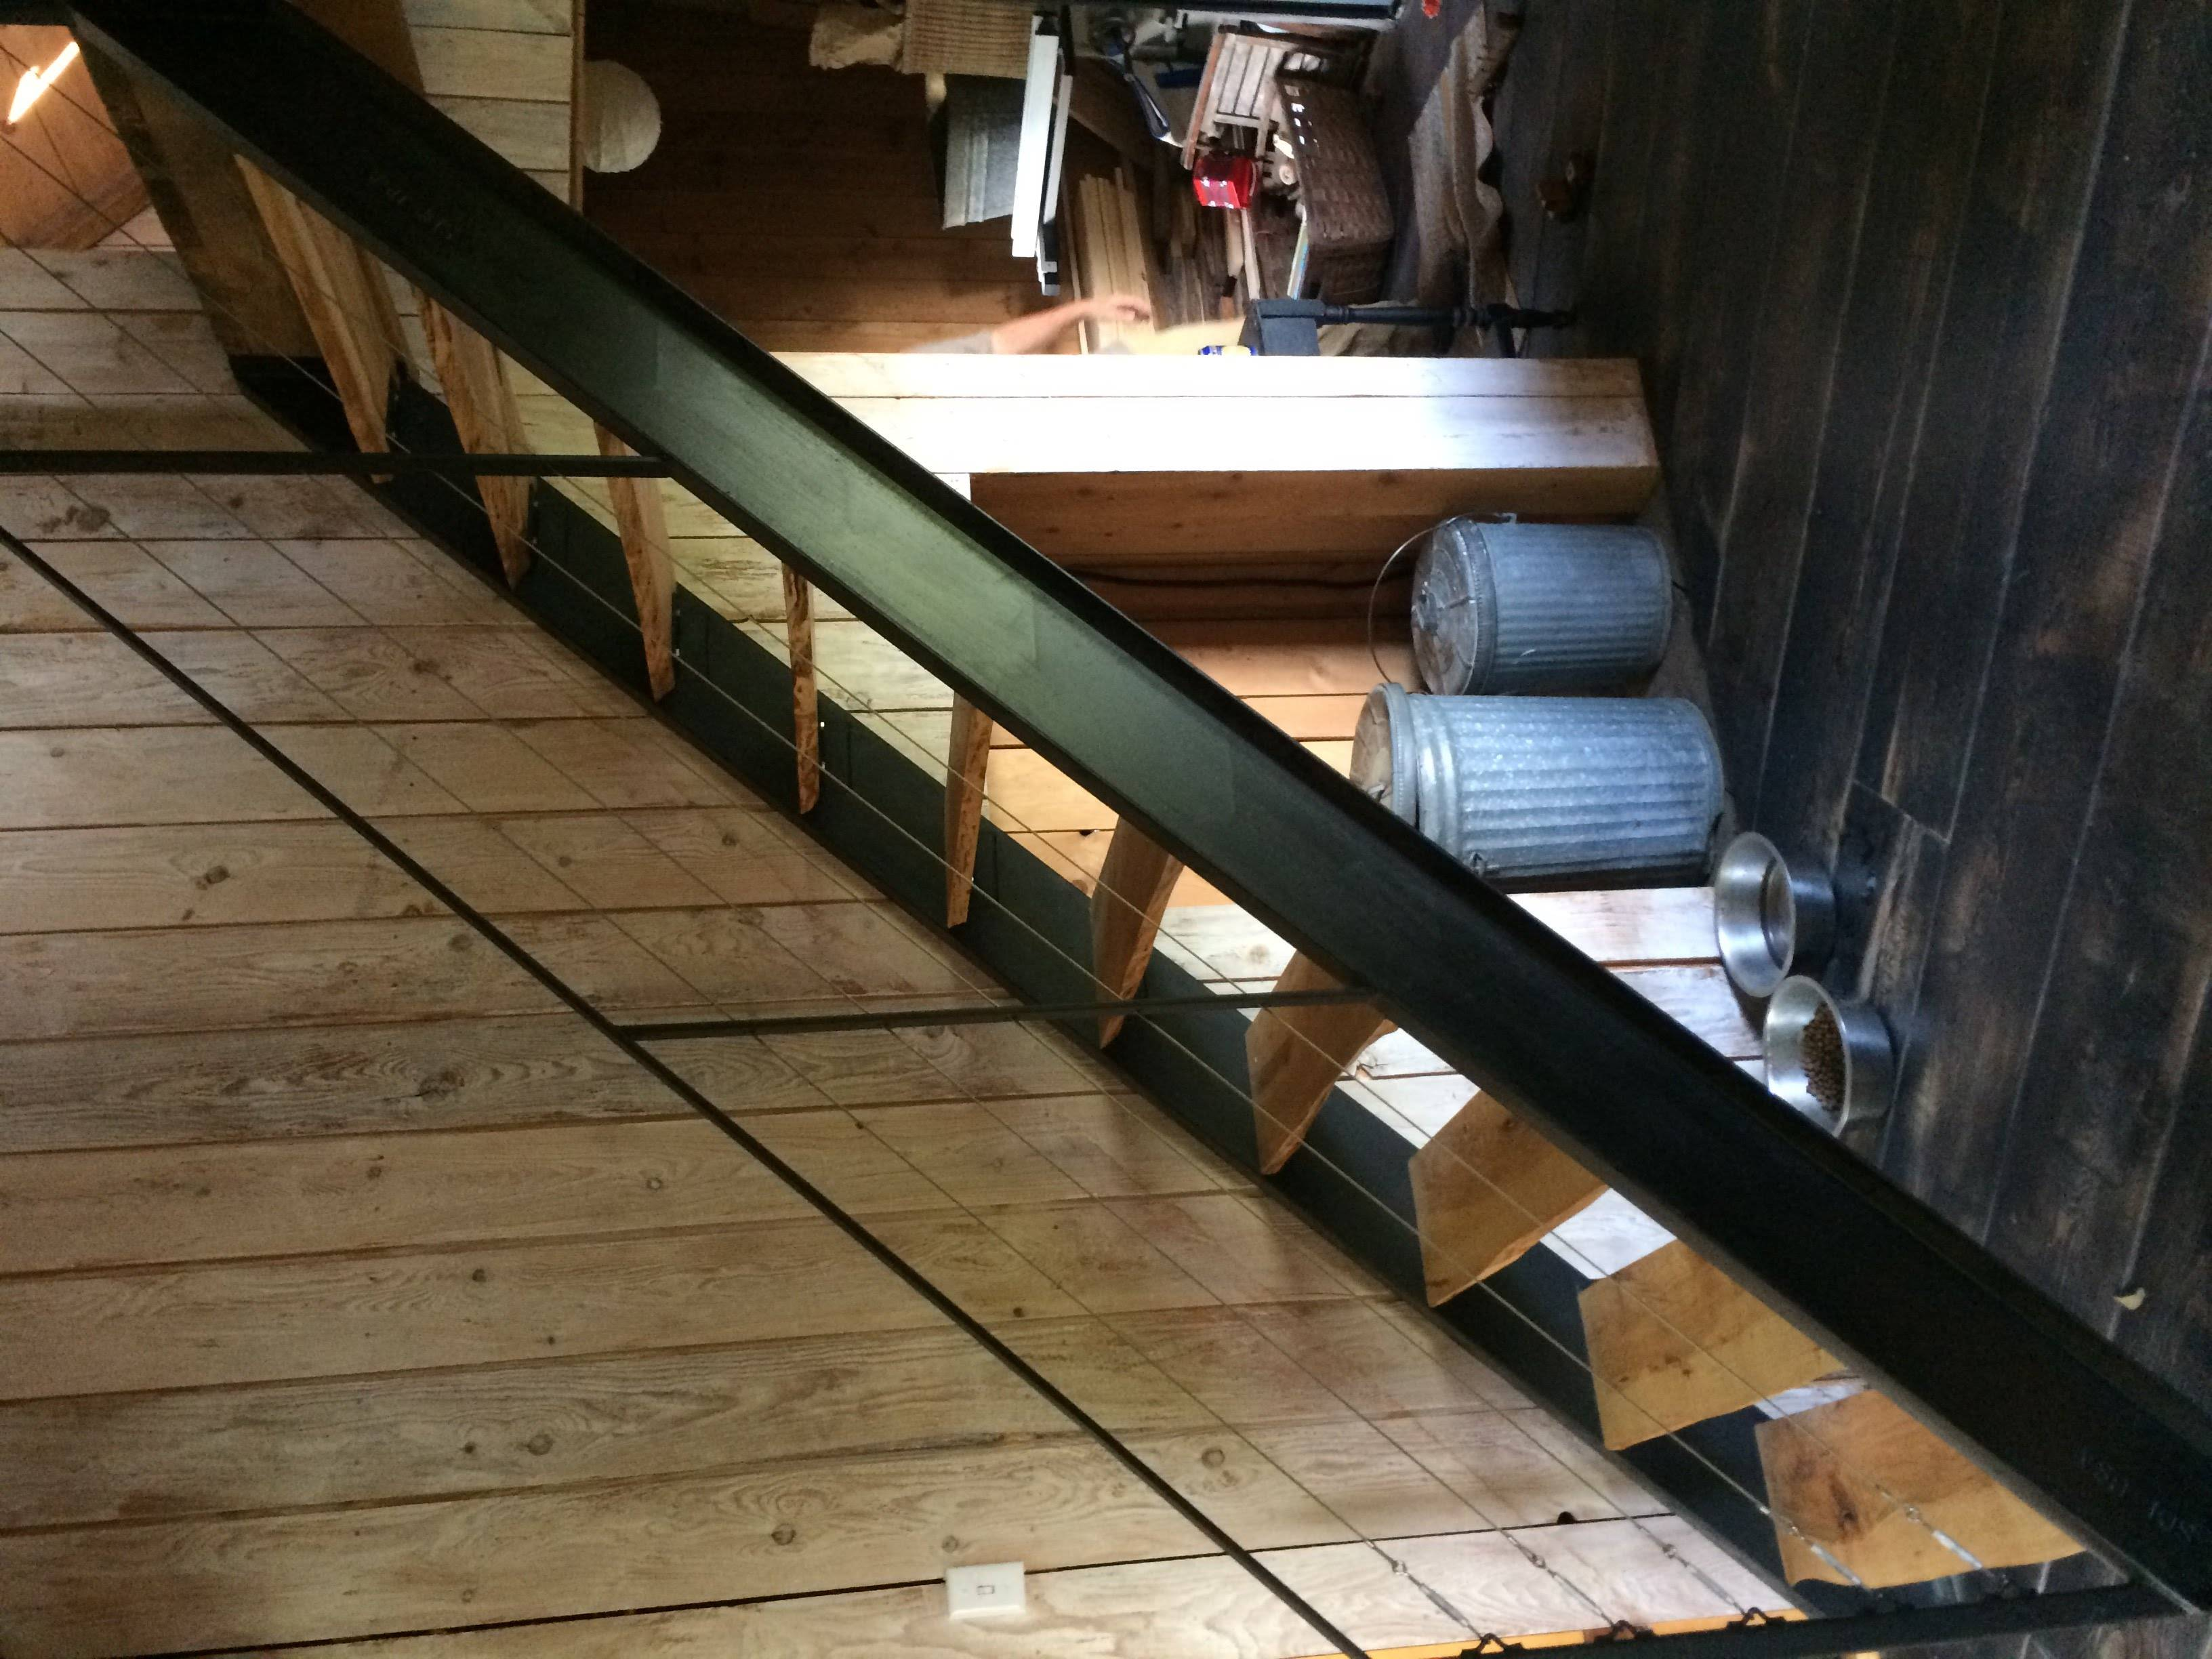 C-channel stringers with railings